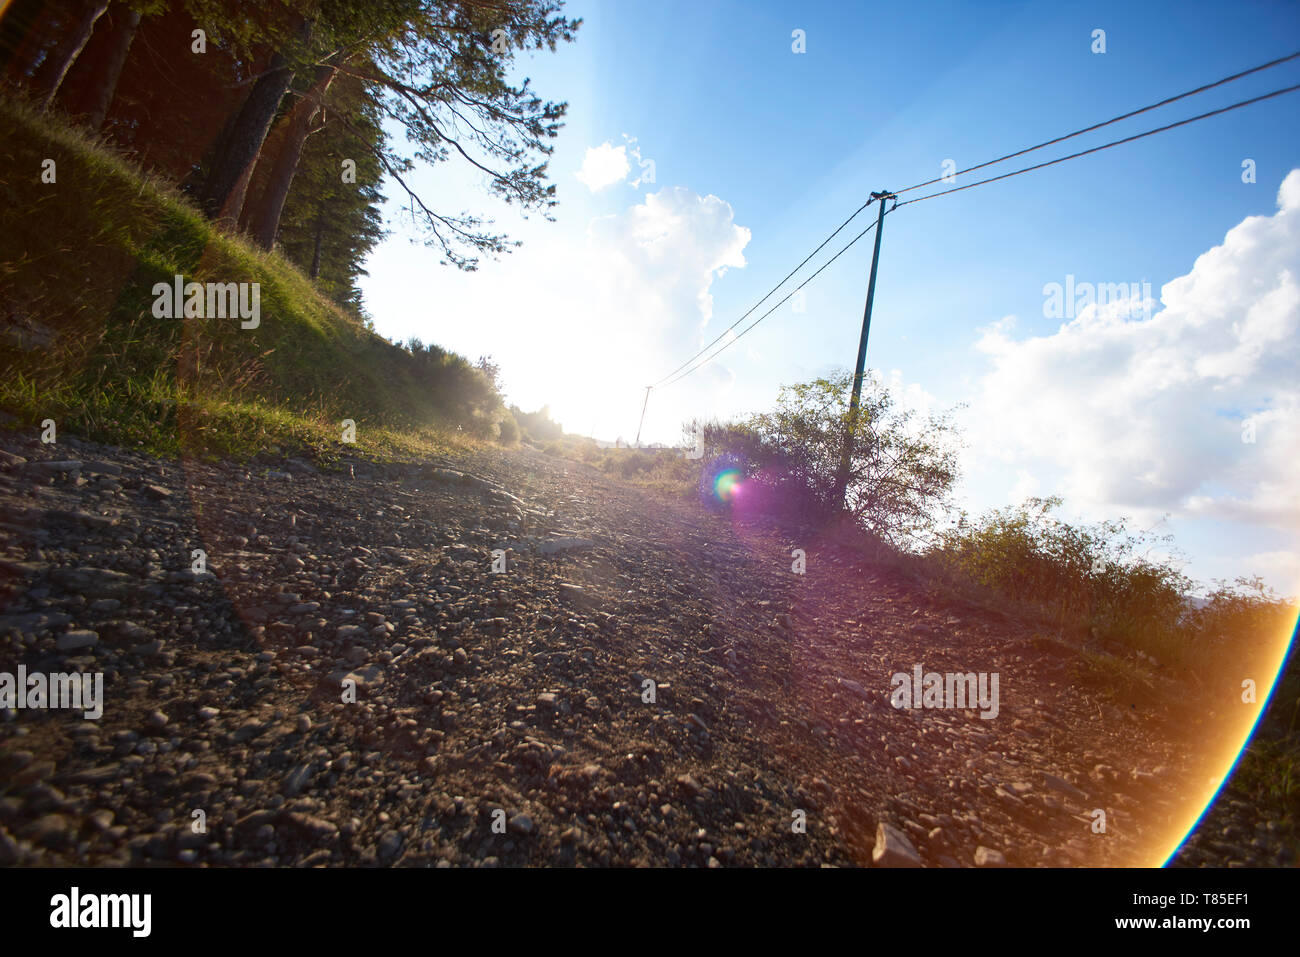 Low angle shot of a dirt road up a hill with sun flaring directly into the lens - Stock Image